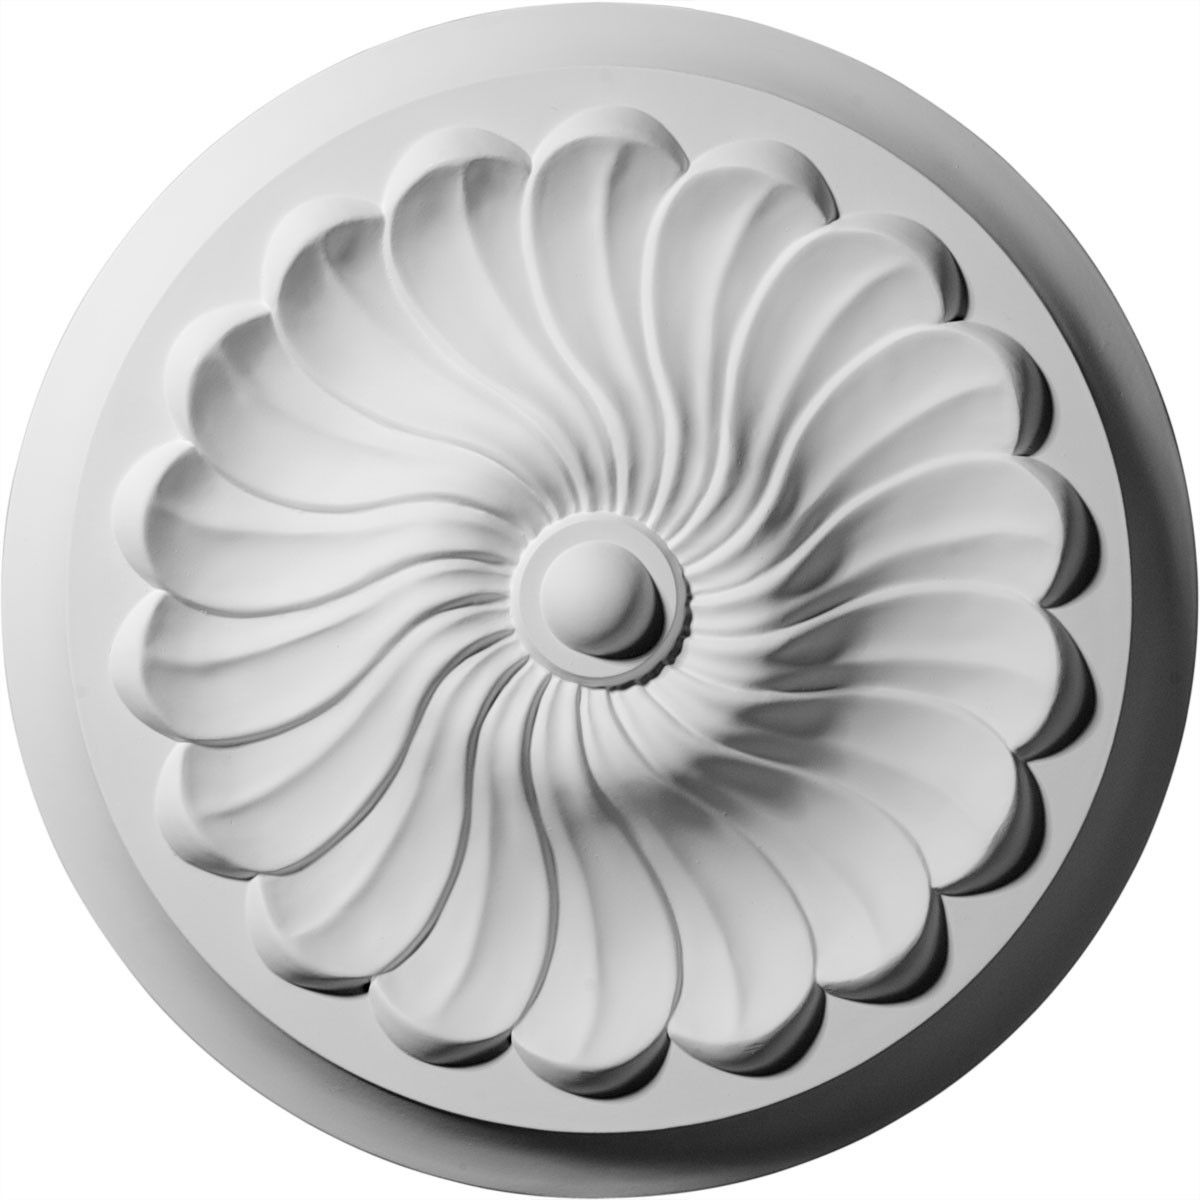 "EM-CM12FL - 12 1/4""OD x 2 1/4""P Flower Spiral Ceiling Medallion (Fits Canopies up to 2"")"